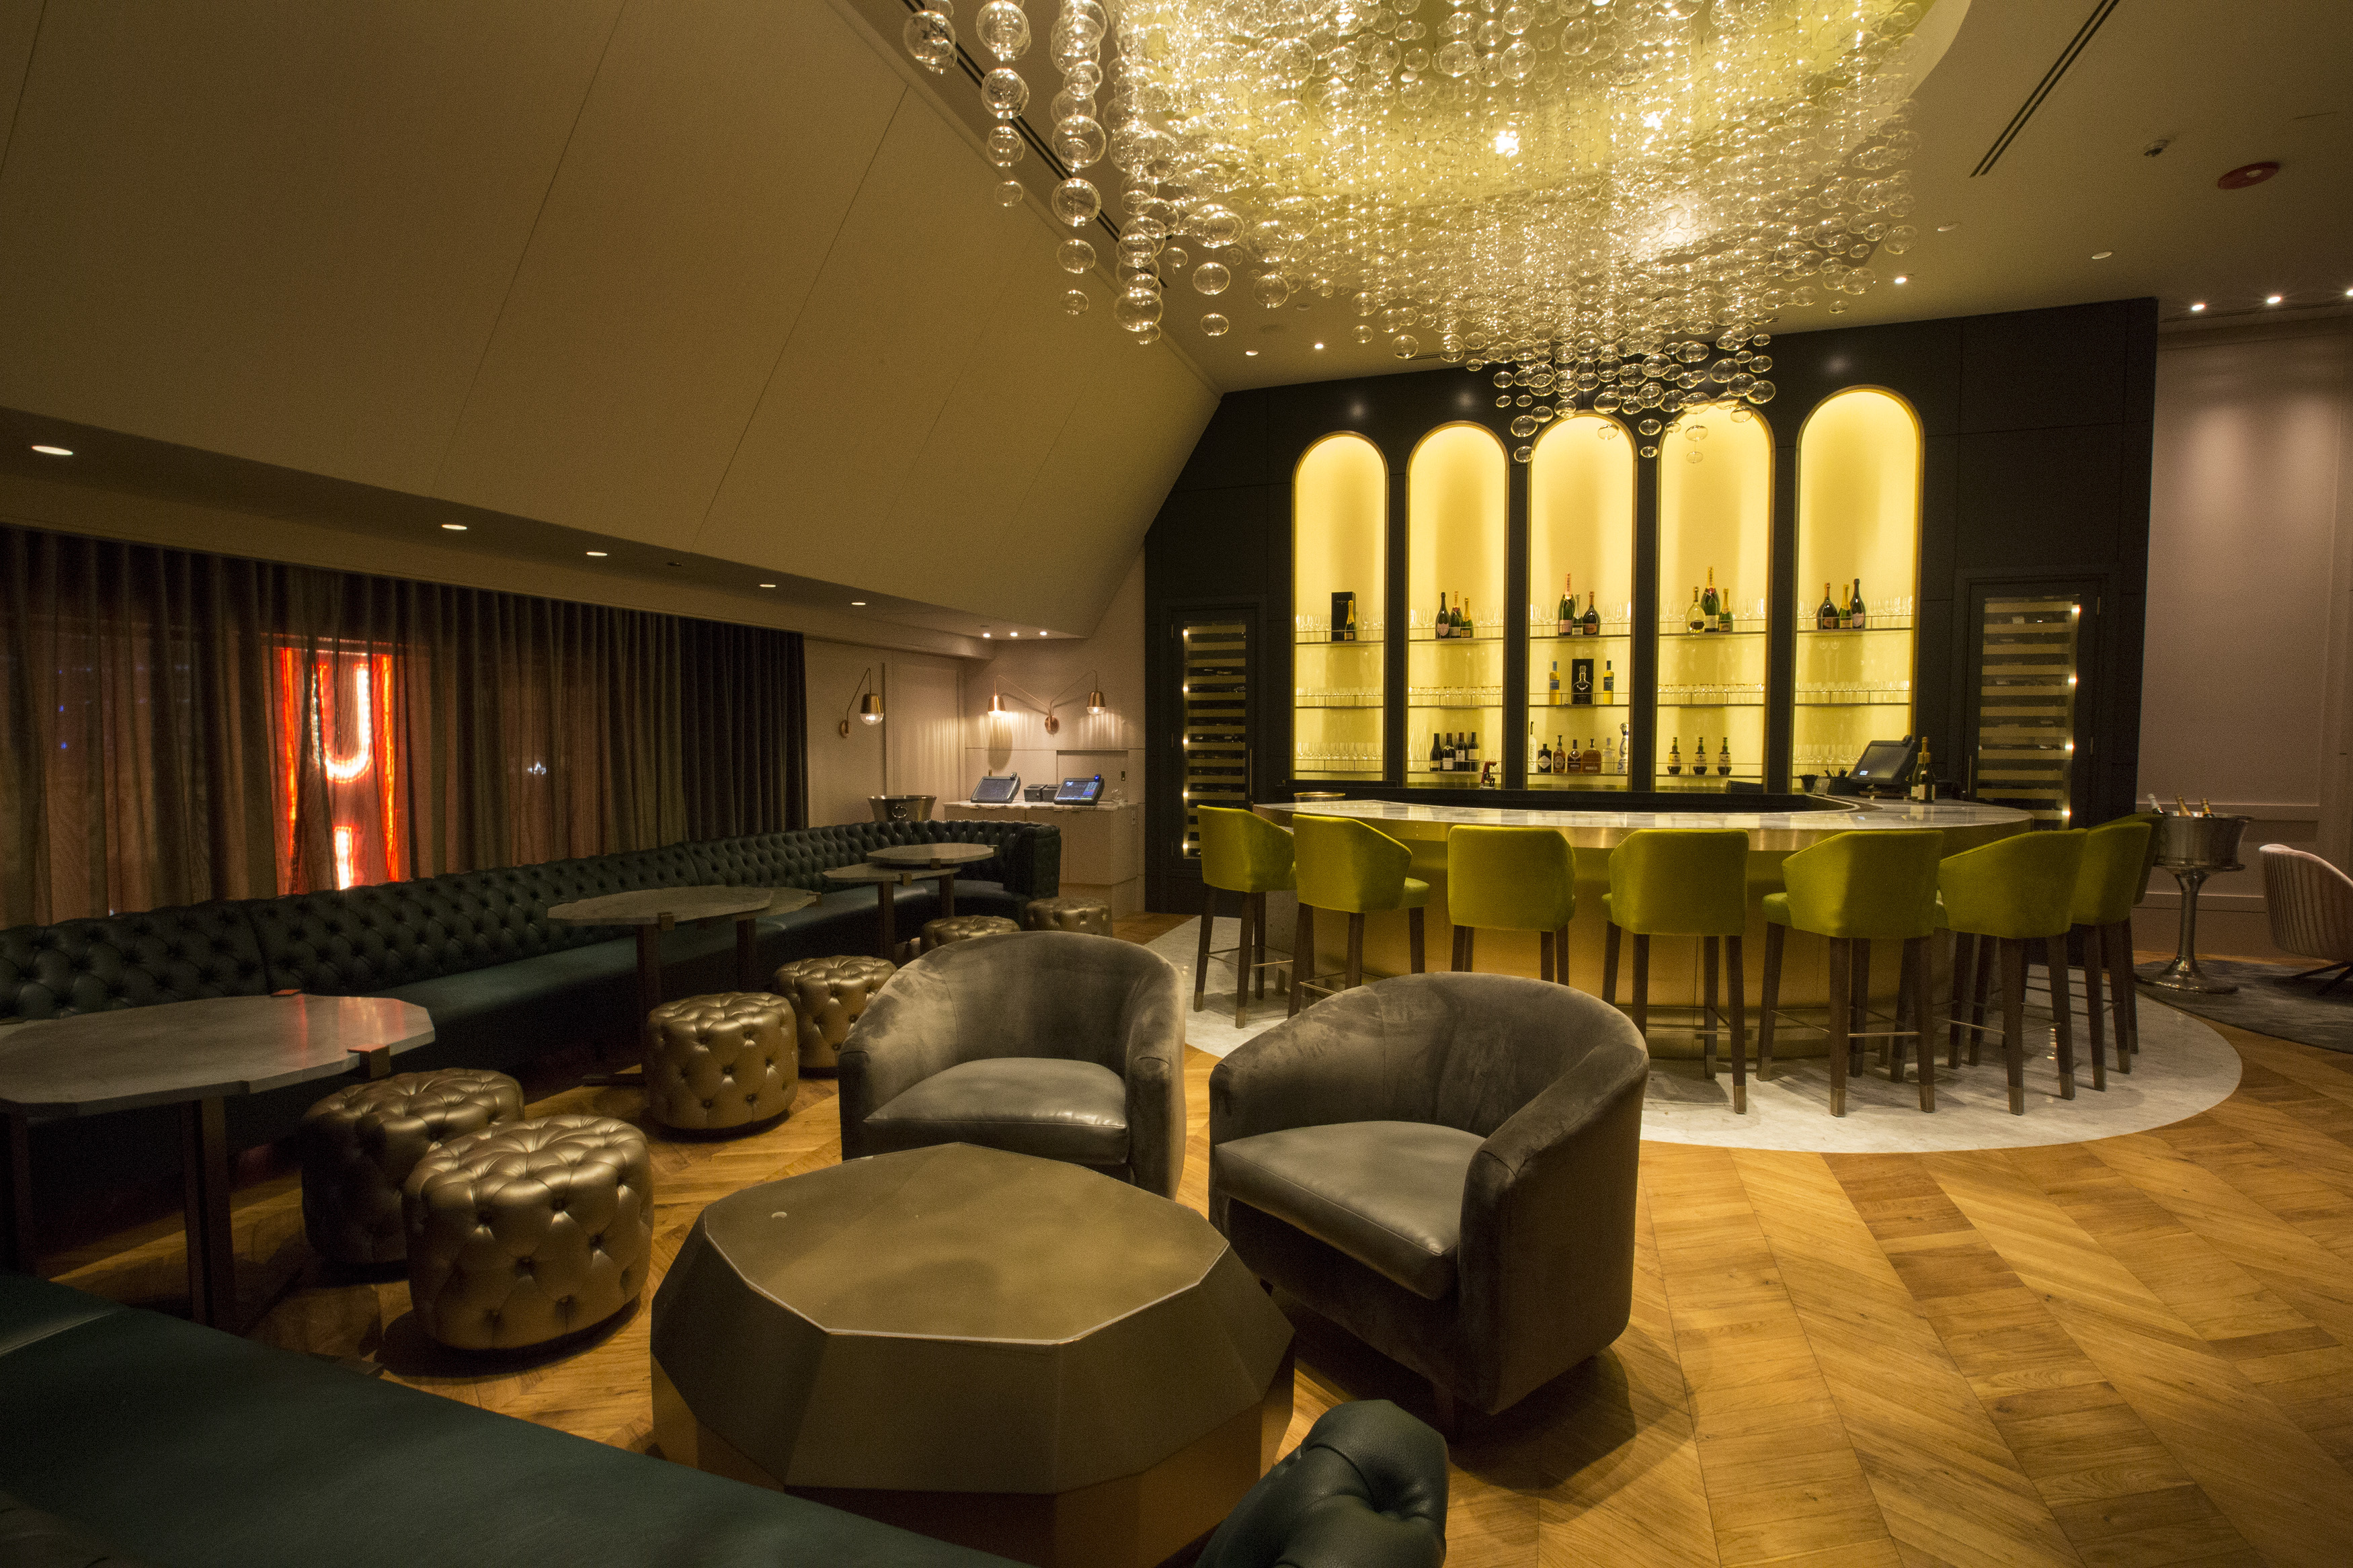 Inside Gold Coast\'s Lavish New Champagne Lounge - Eater Chicago